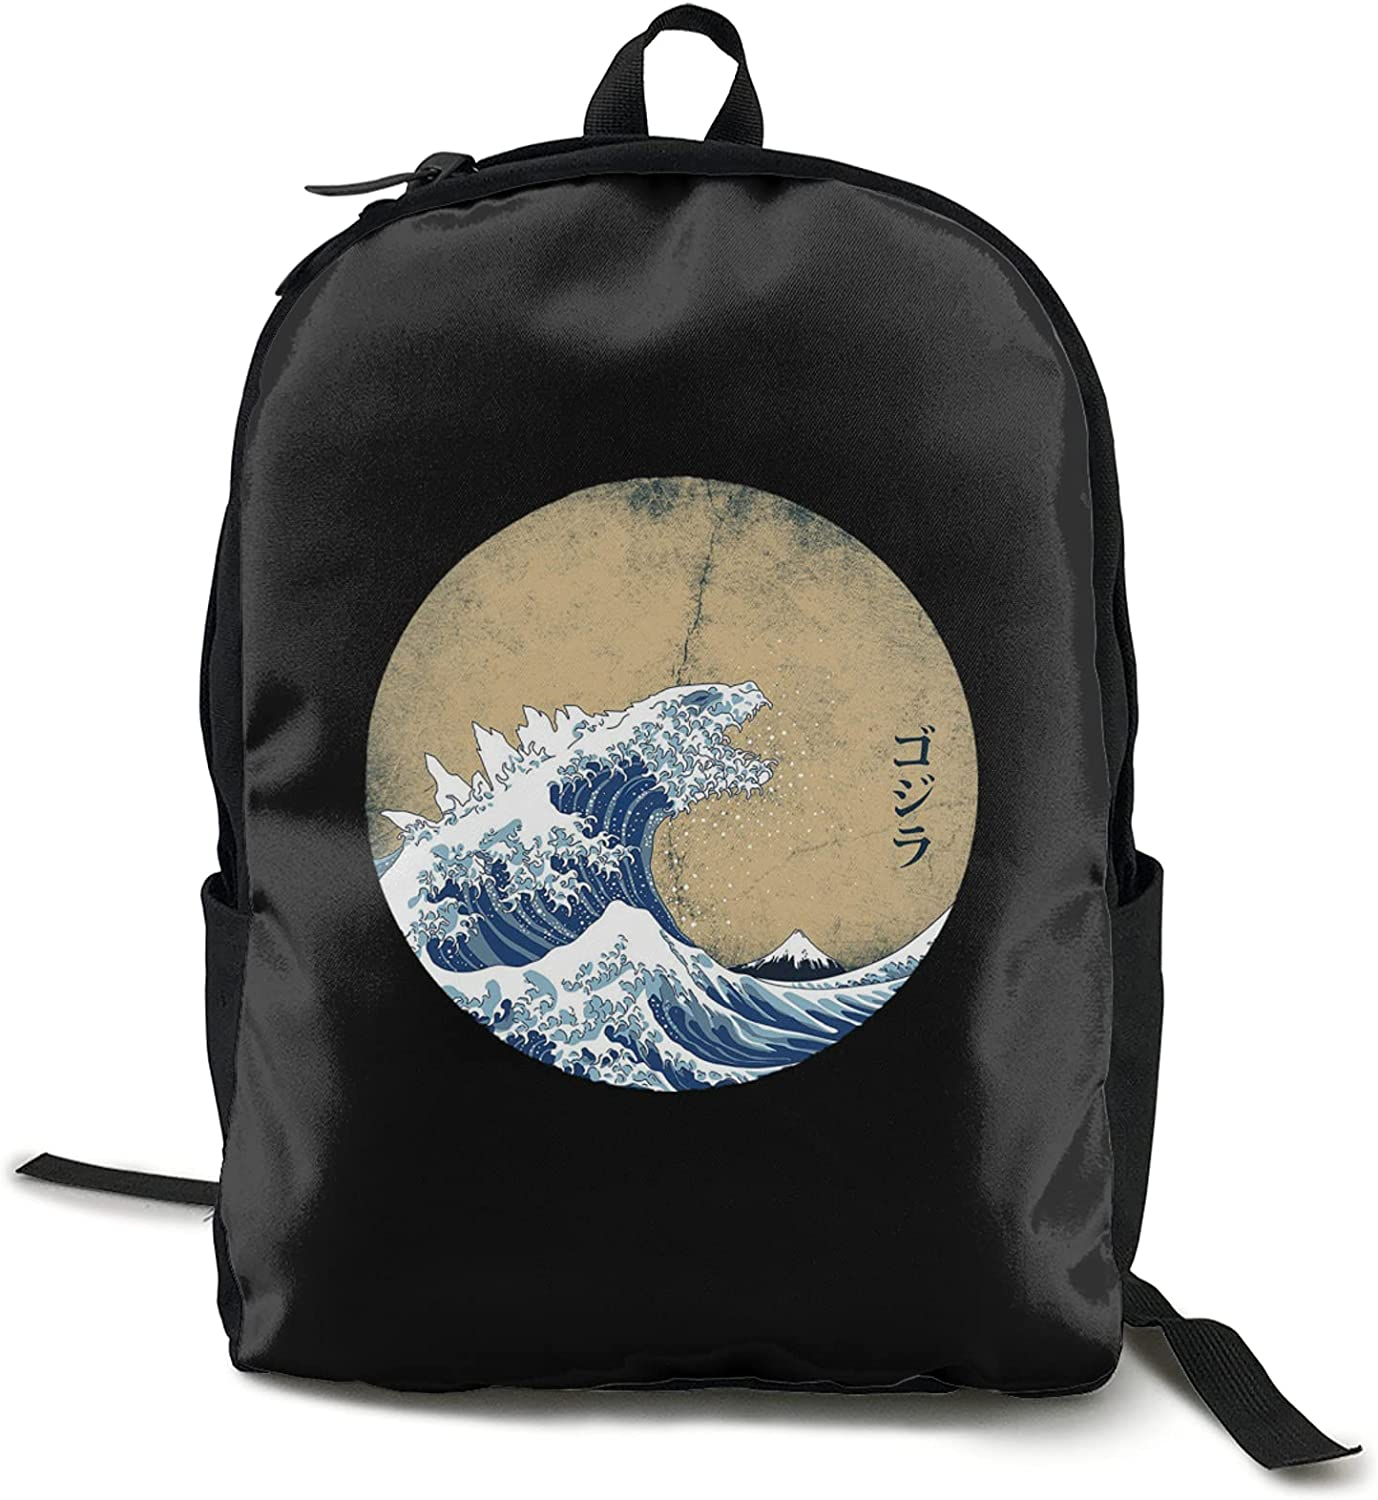 Hokusai Cthulhu Business Travel Laptop Backpack Travel Backpack Classic Computer Bag